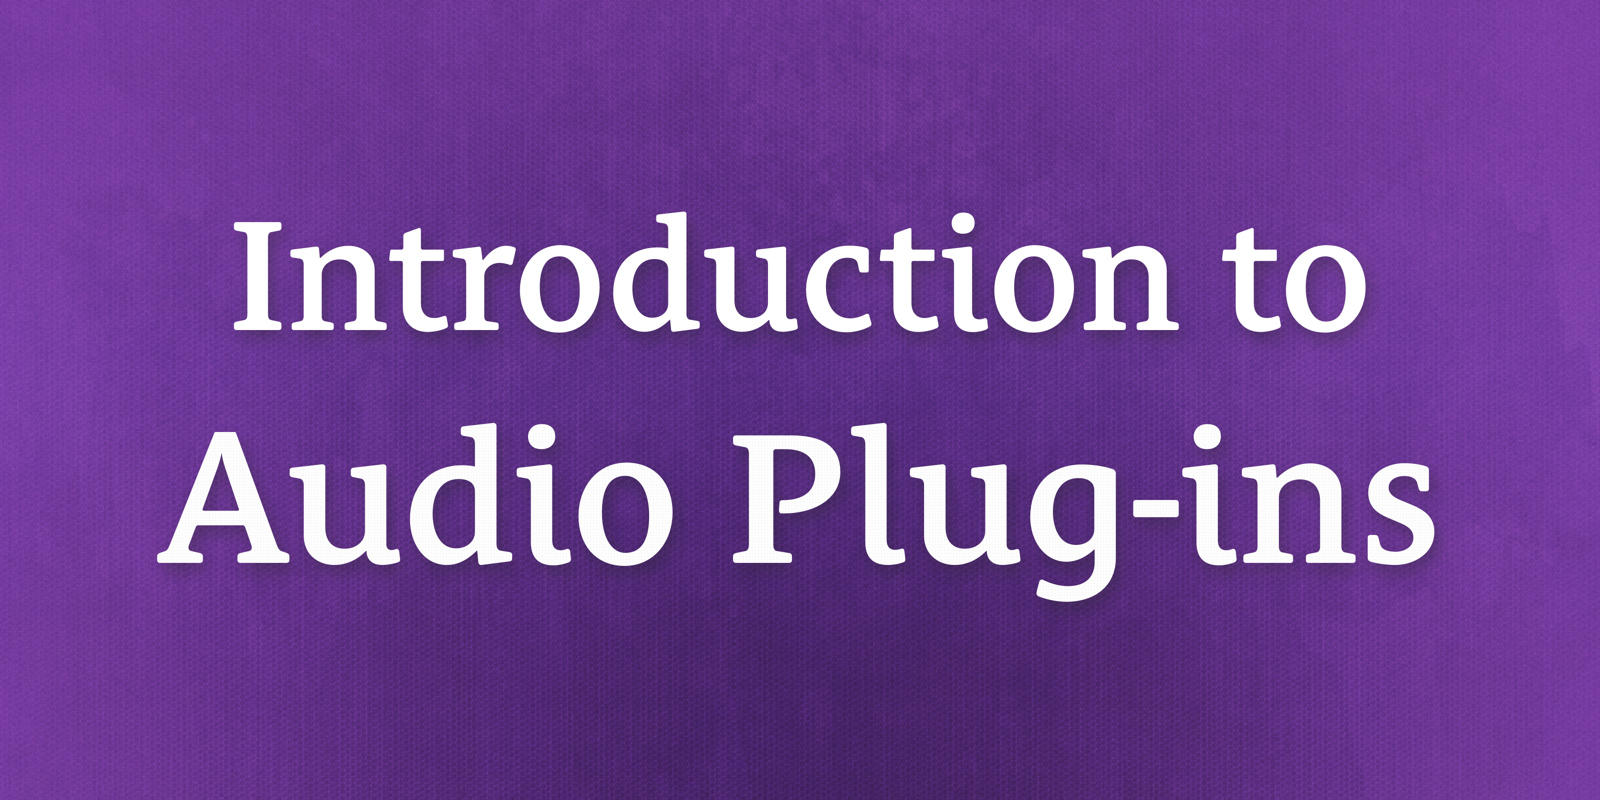 The Podcast Dude 26: Introduction to Audio Plug-ins for Post-Production